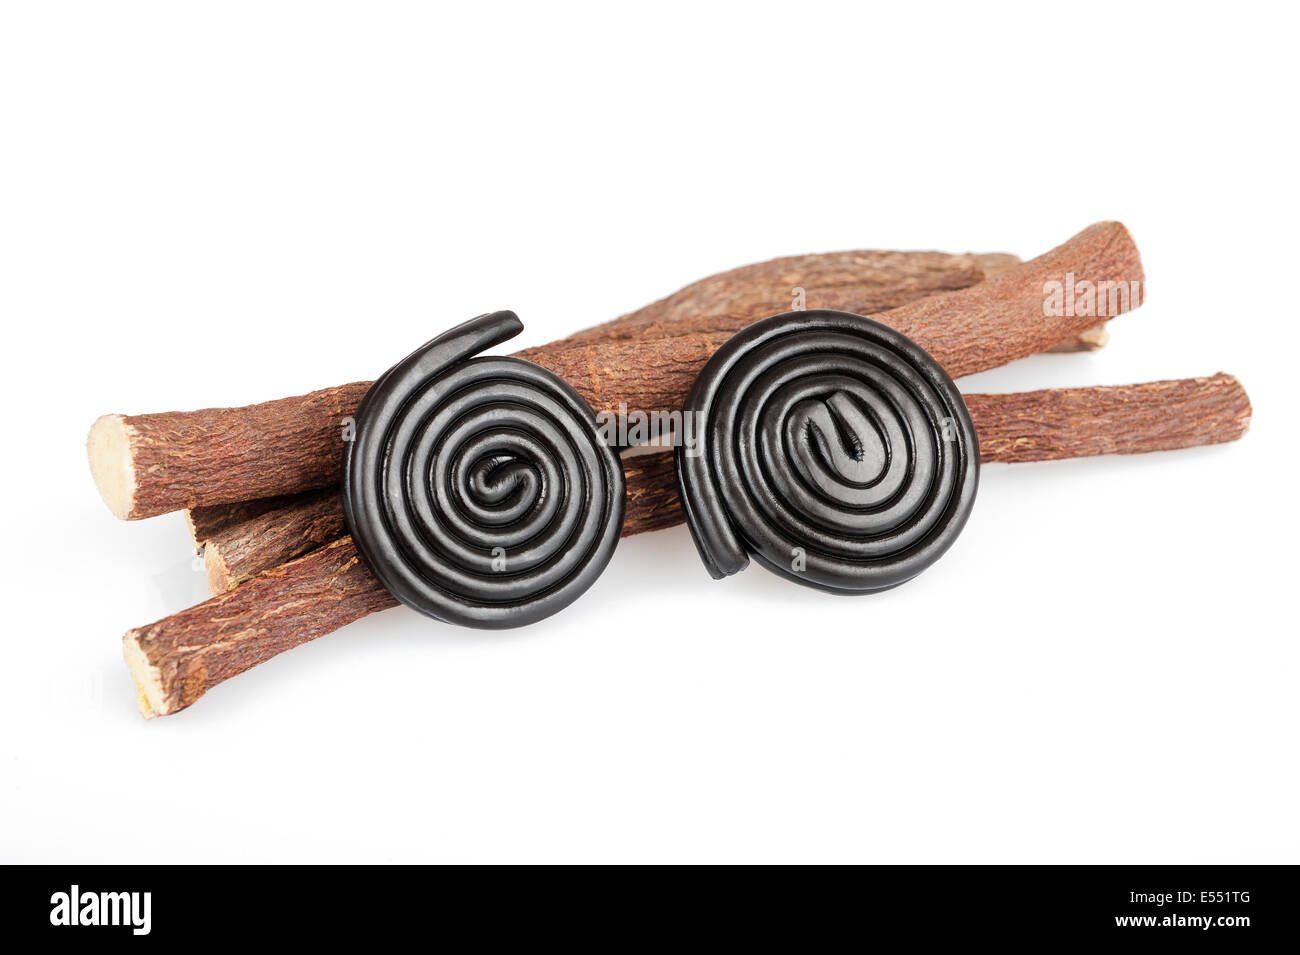 Licorice roots and wheels isolated on white - Stock Image